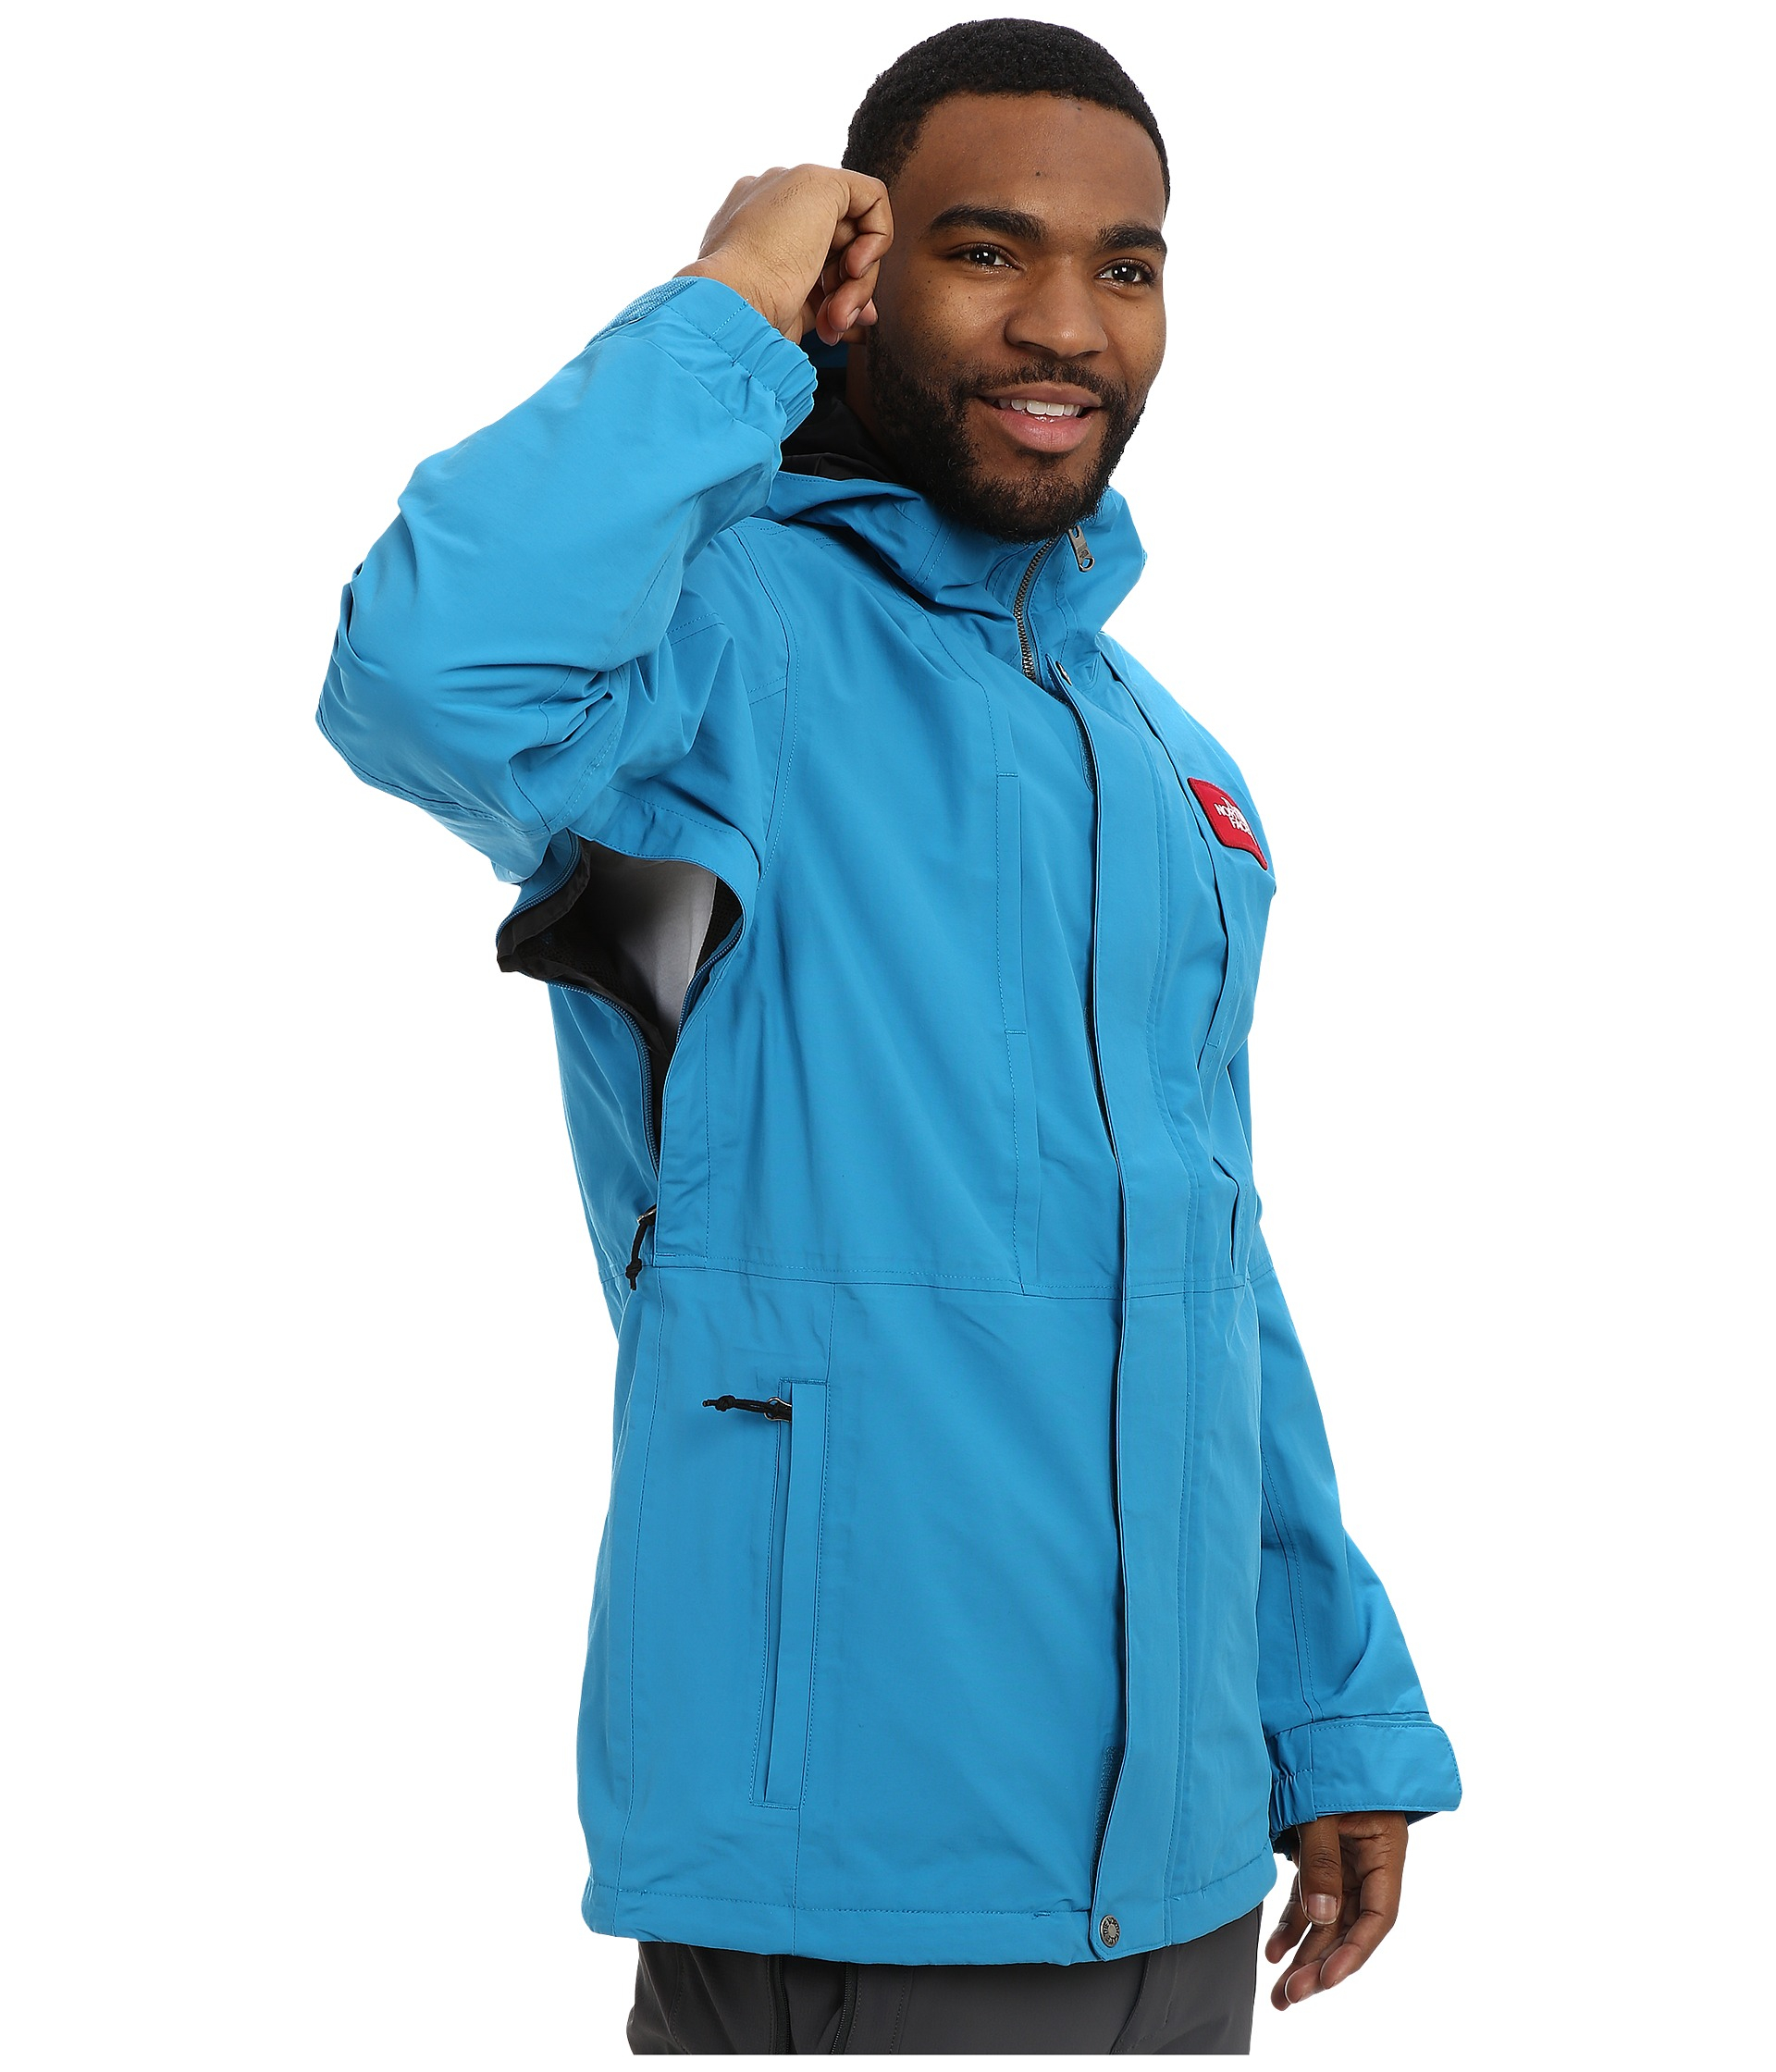 af42326a9938 Lyst - The North Face Turn It Up Jacket in Blue for Men